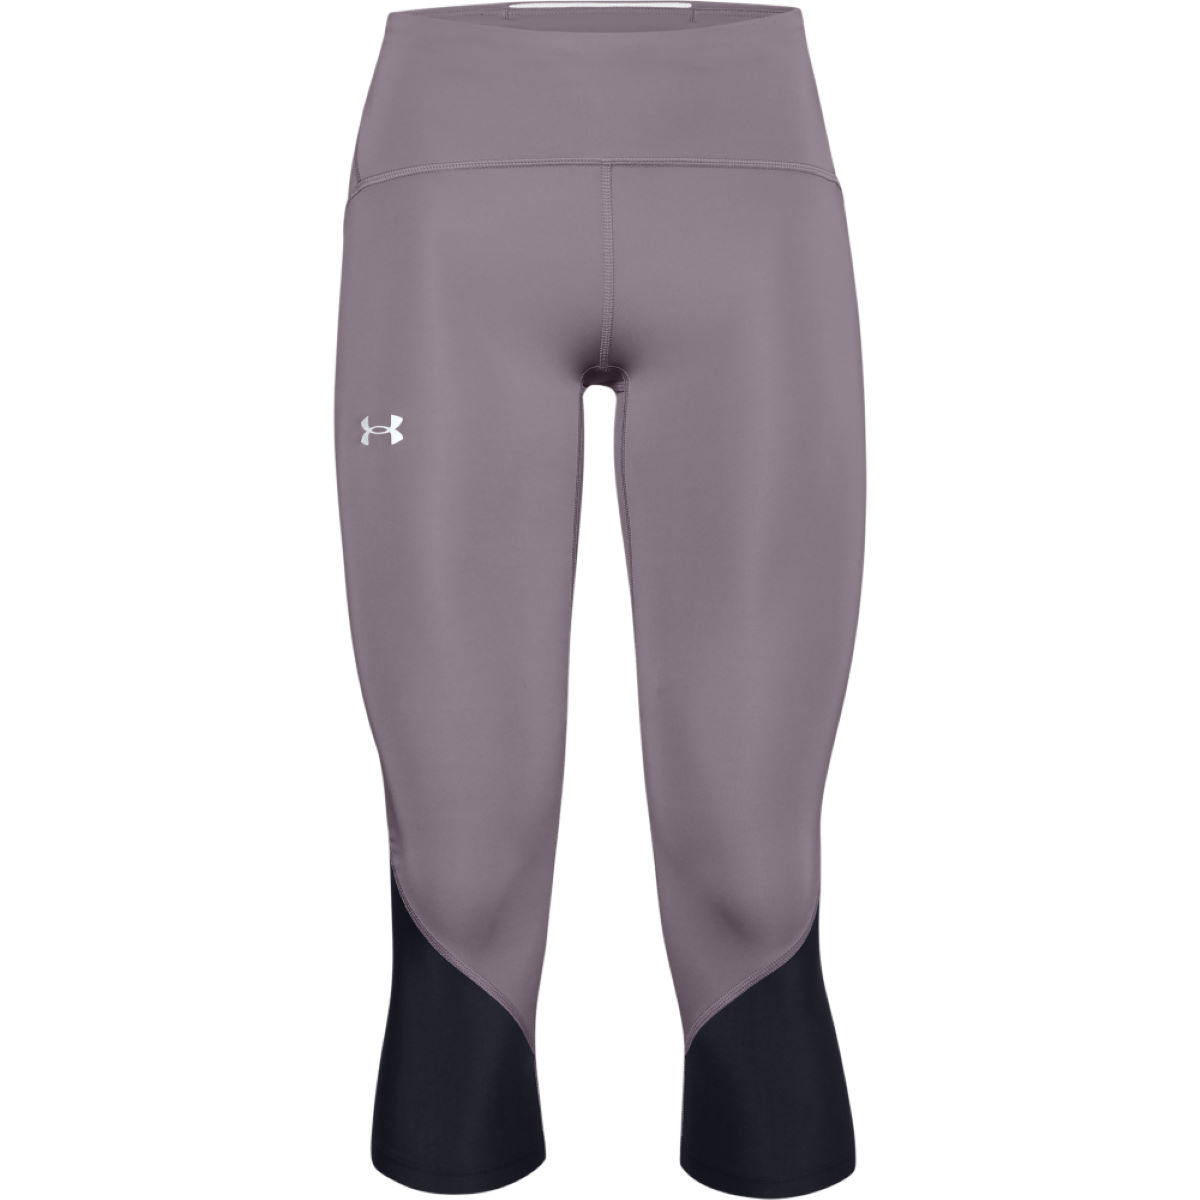 Under Armour Womens Fly Fast 2.0 Hg Crop - Small  Compression Tights